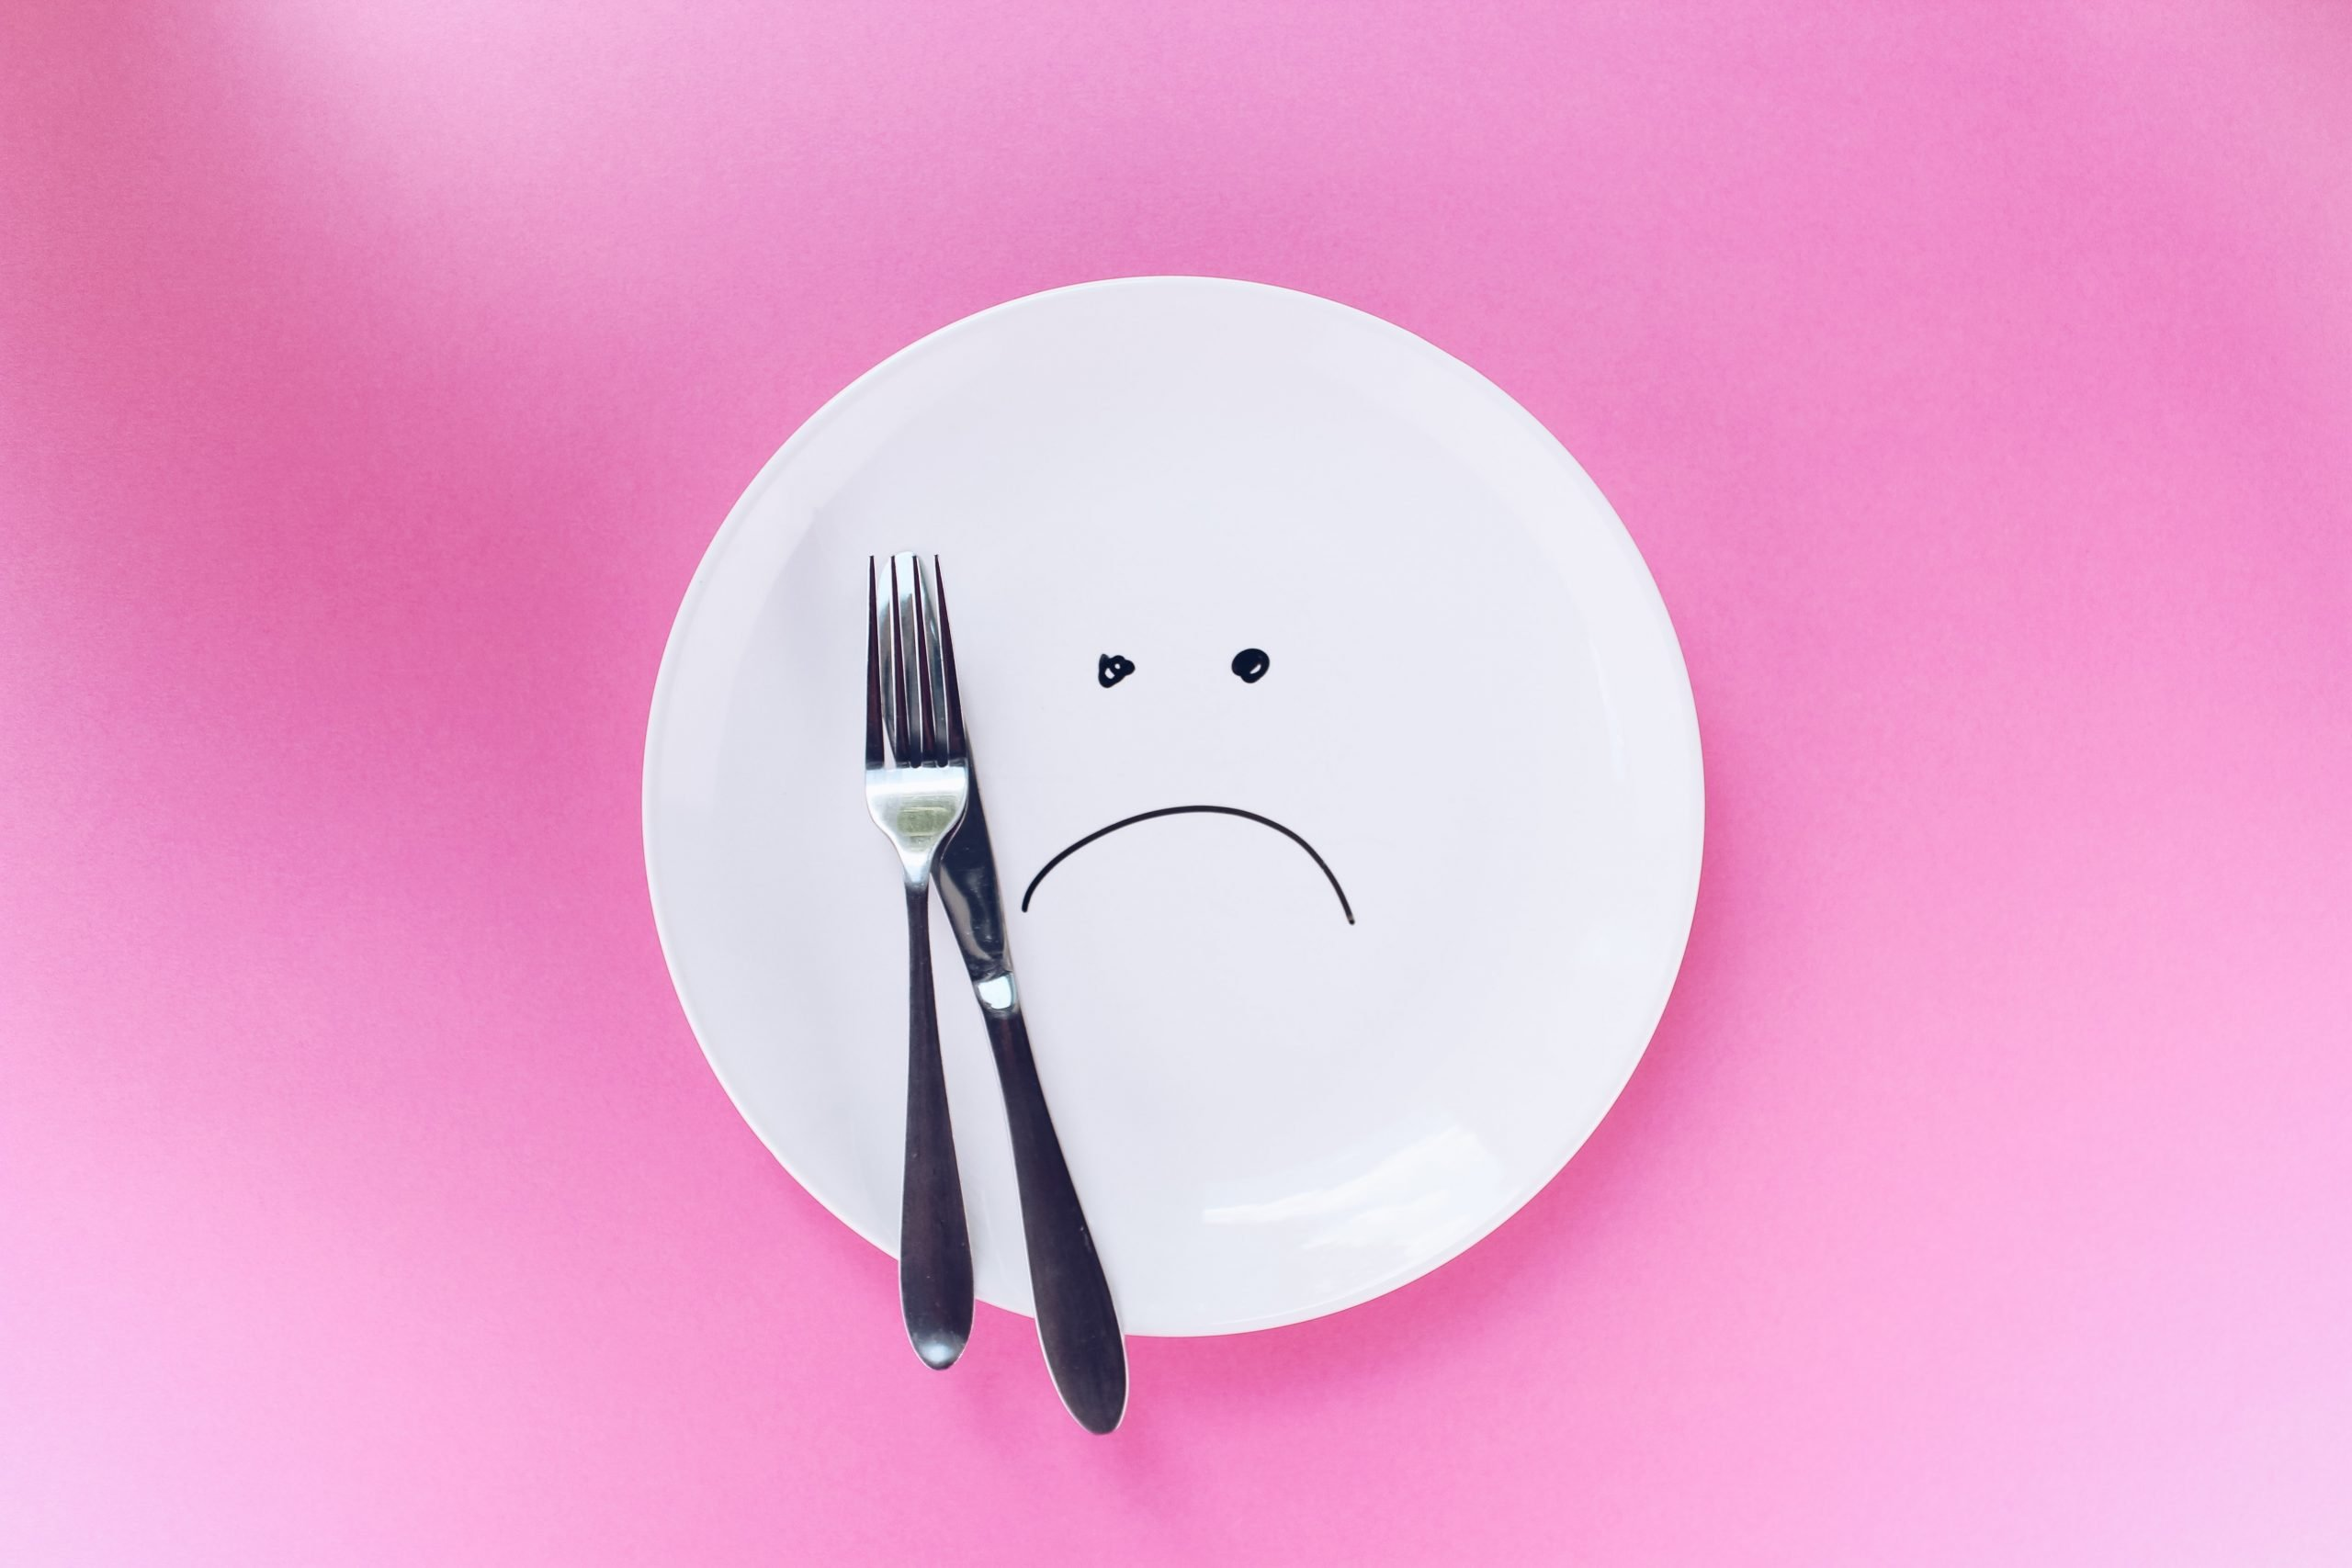 An empty plate with a downward smiley drawn on it